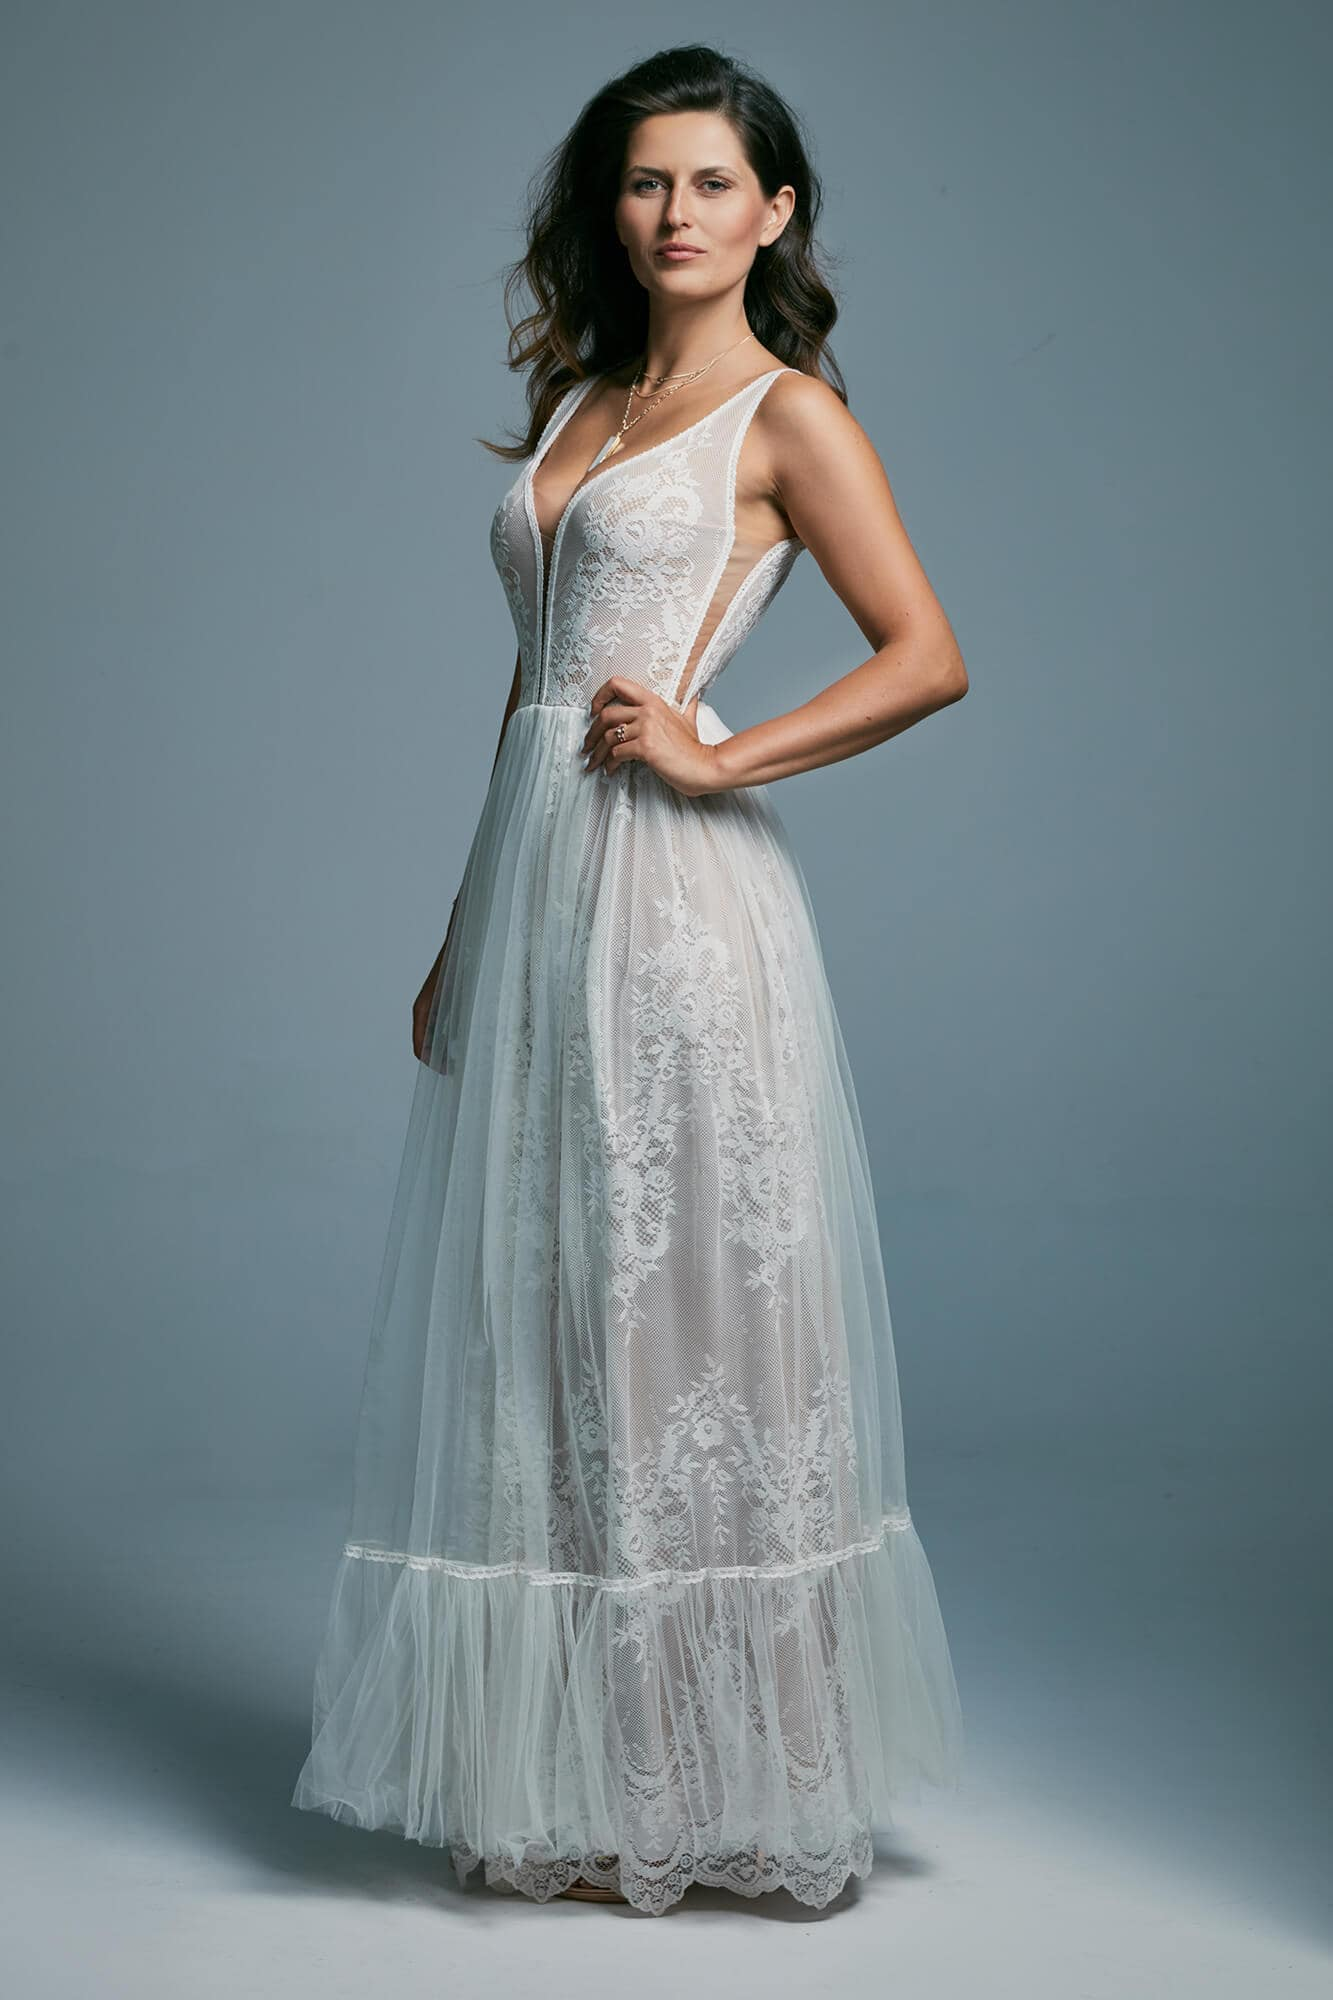 A light, airy wedding dress with a deep cut at the back Porto 15